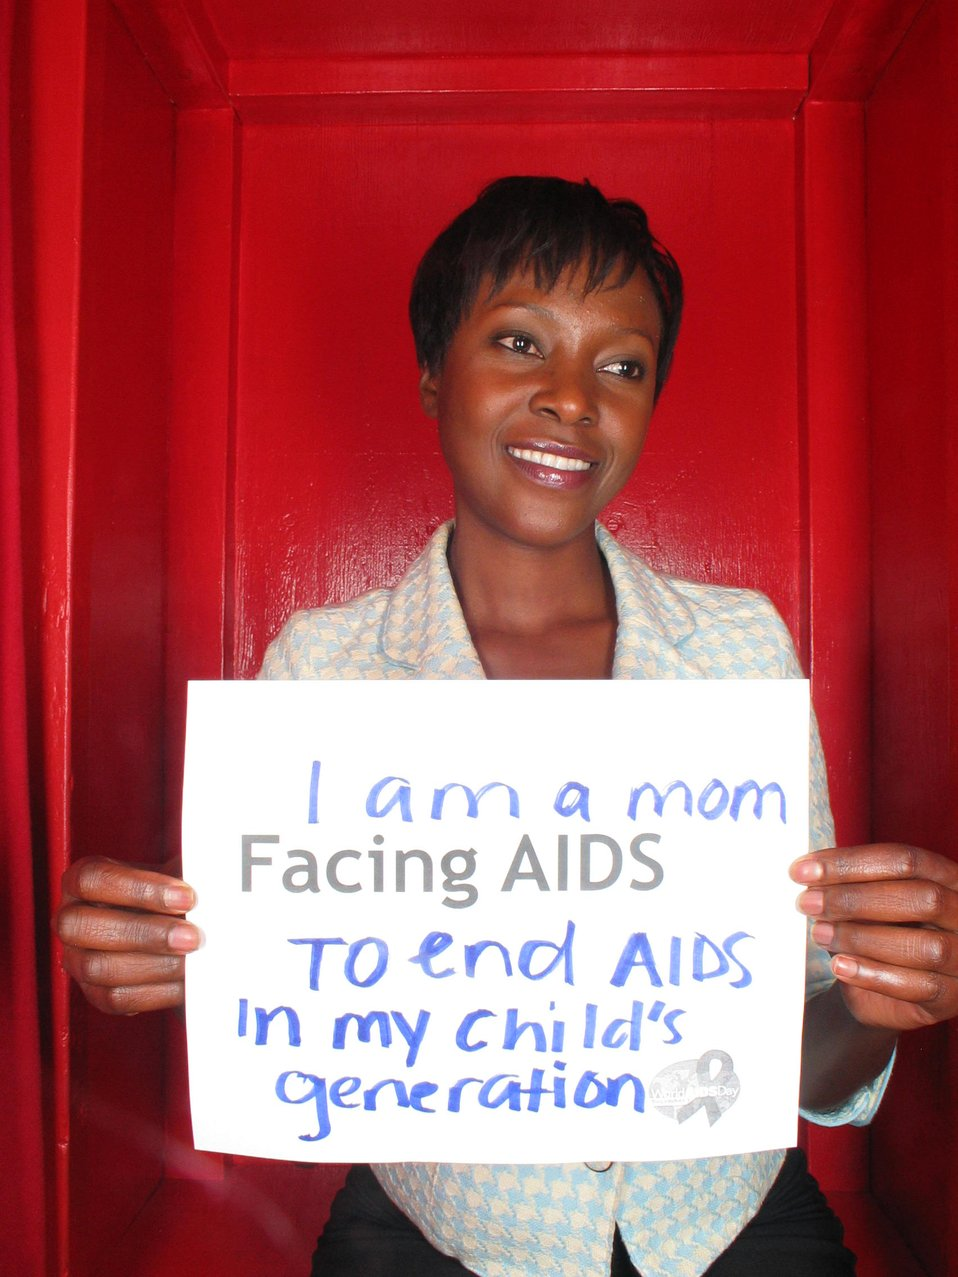 I am a mom Facing AIDS to end AIDS in my child's generation.